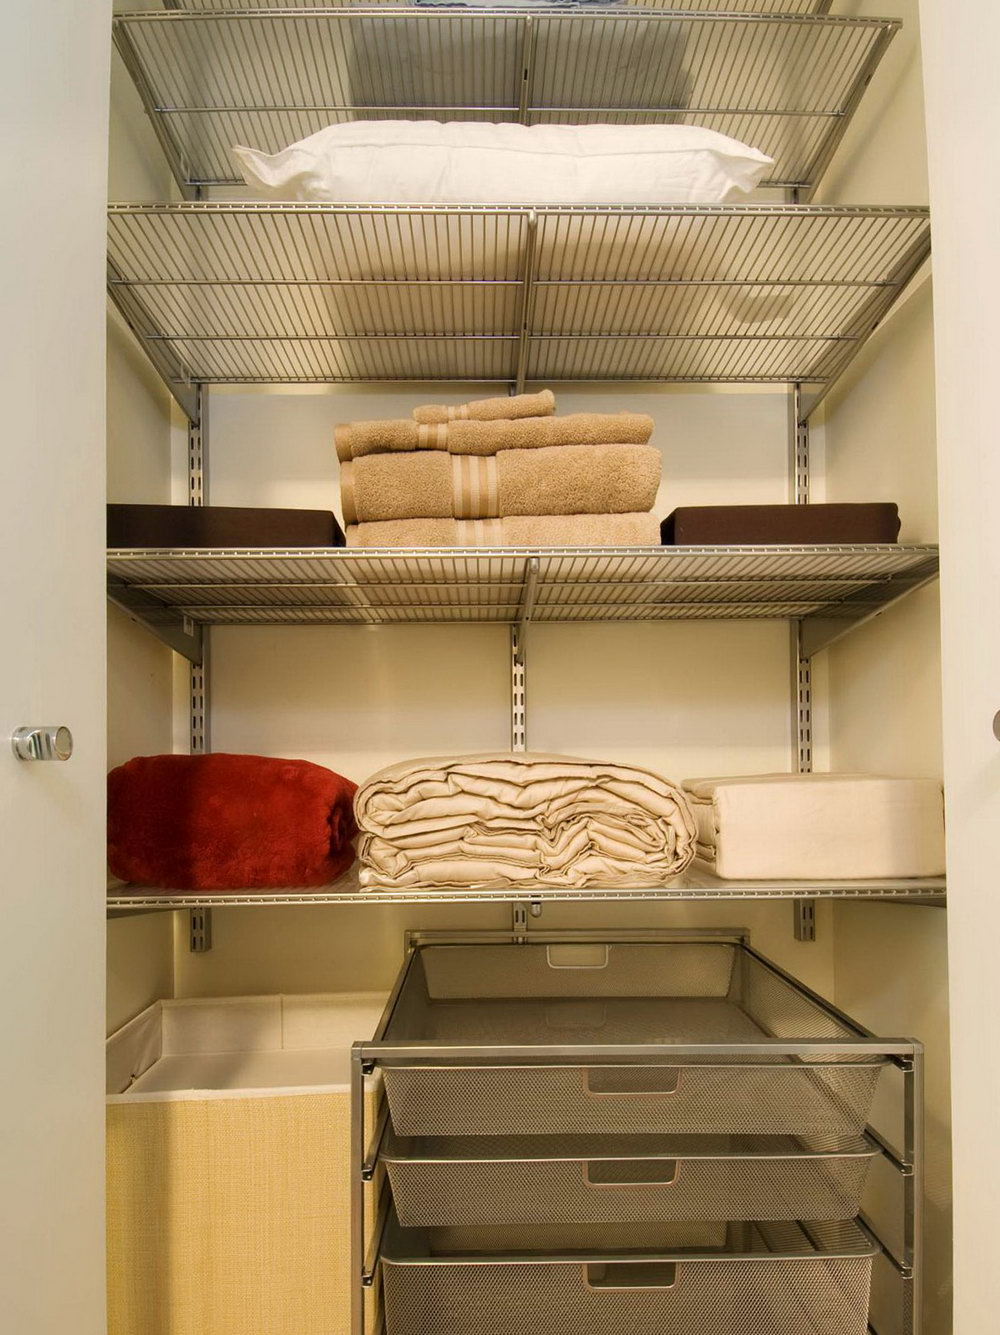 How To Organize Bathroom Closet With Deep Shelves